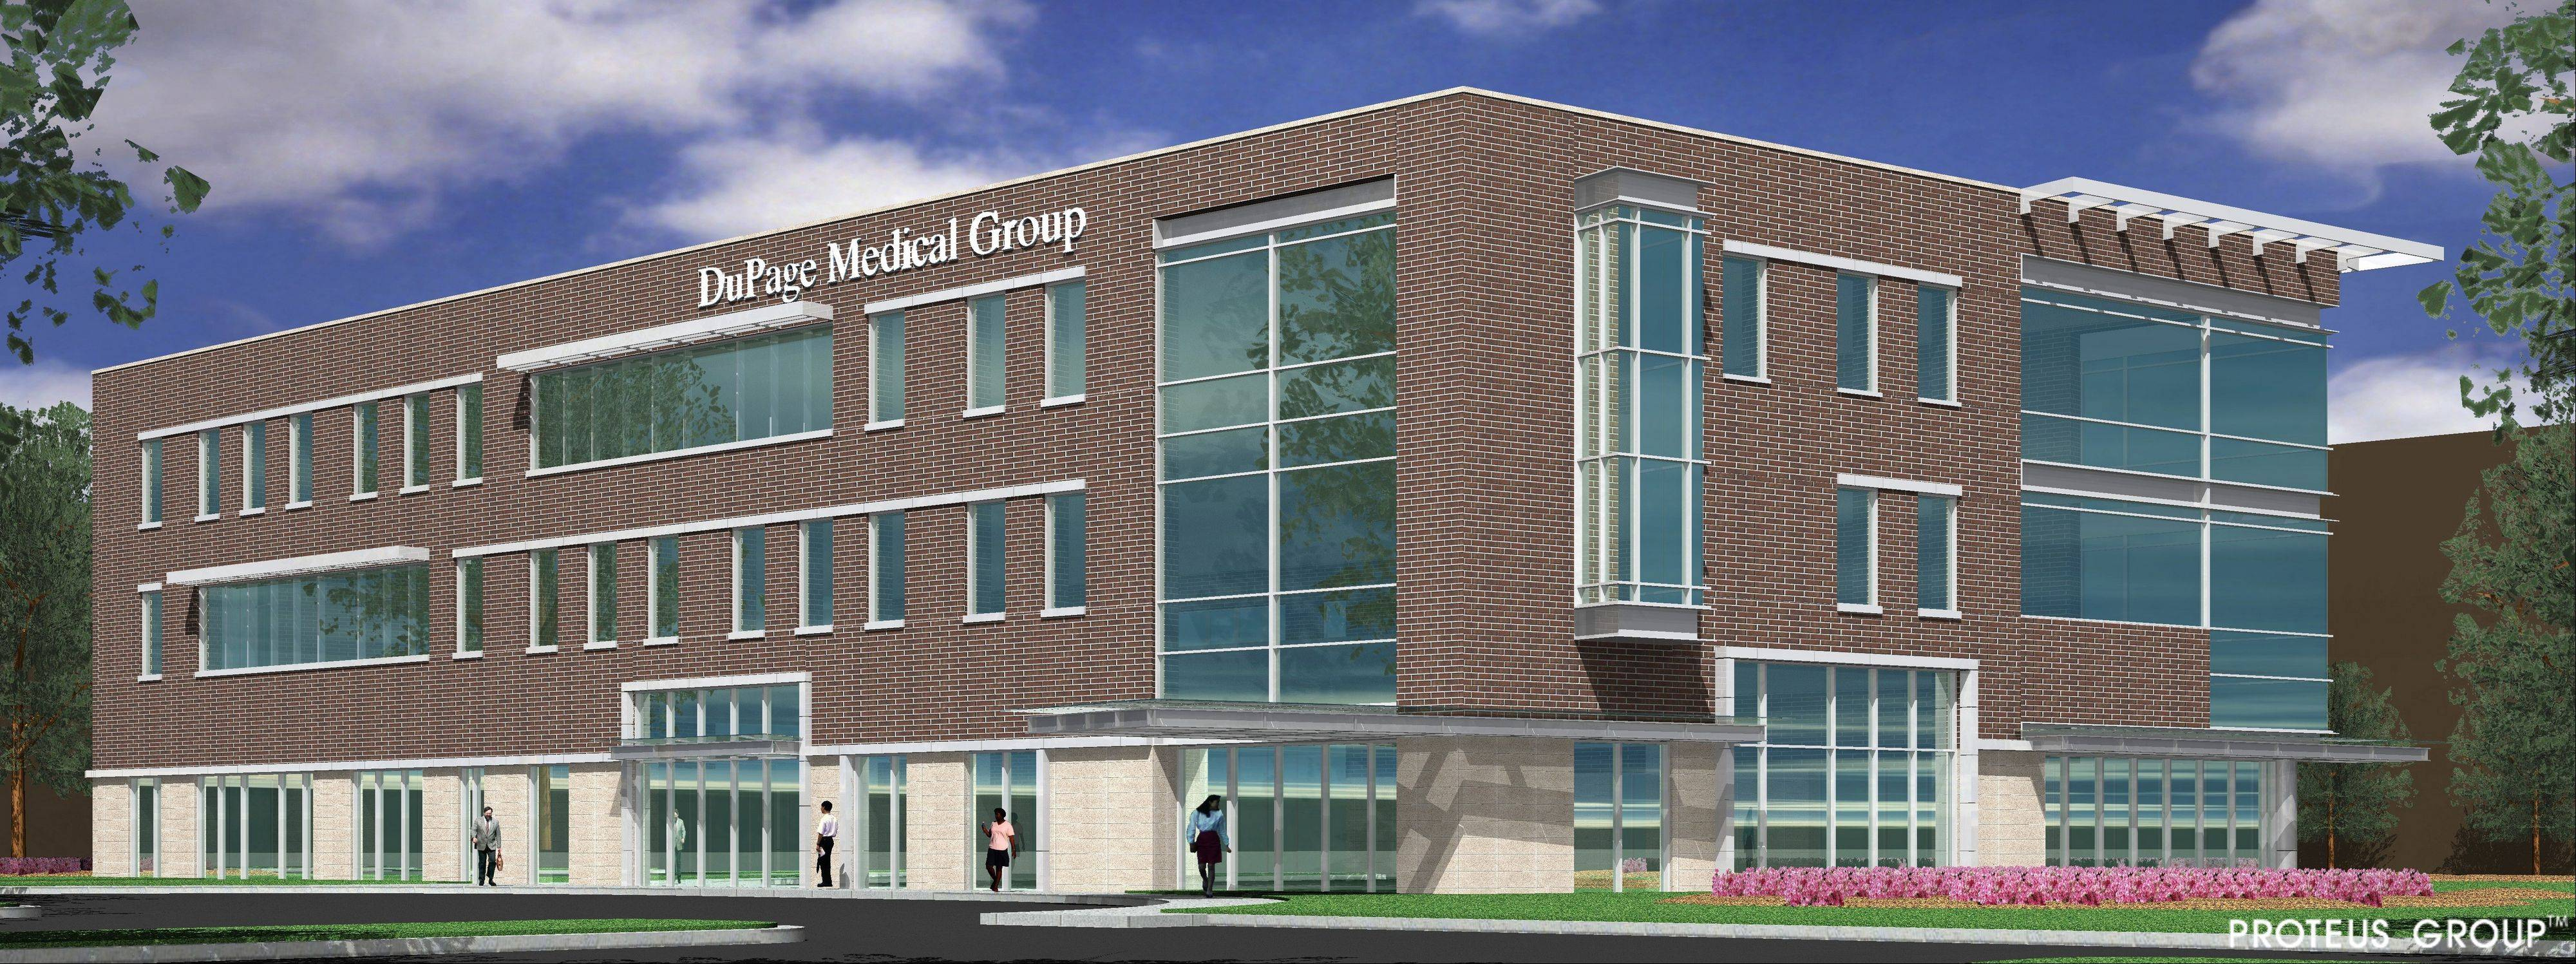 The three-story, 40,000-square-foot DuPage Medical Group facility is scheduled to open this spring in downtown Wheaton.